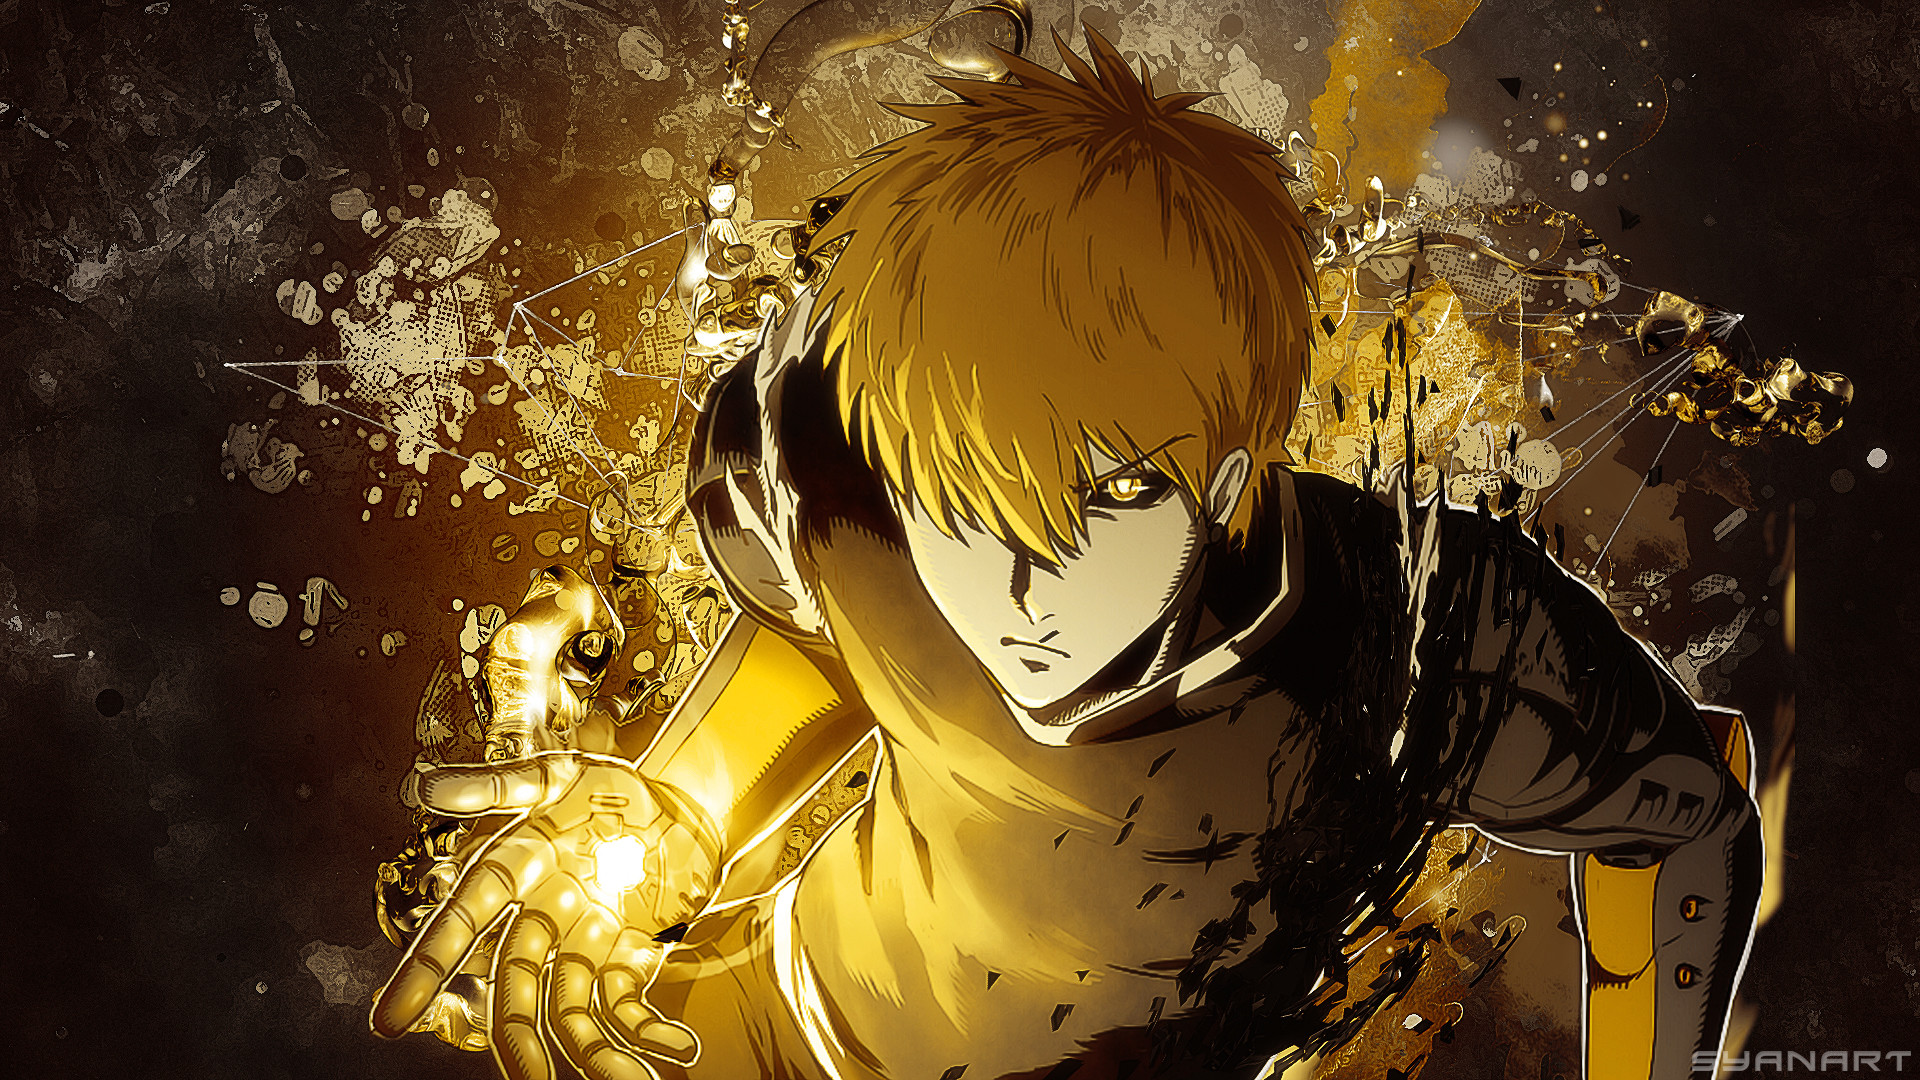 Post Views: 569. Categories: Anime. Tags: genos, one punch man wallpaper …